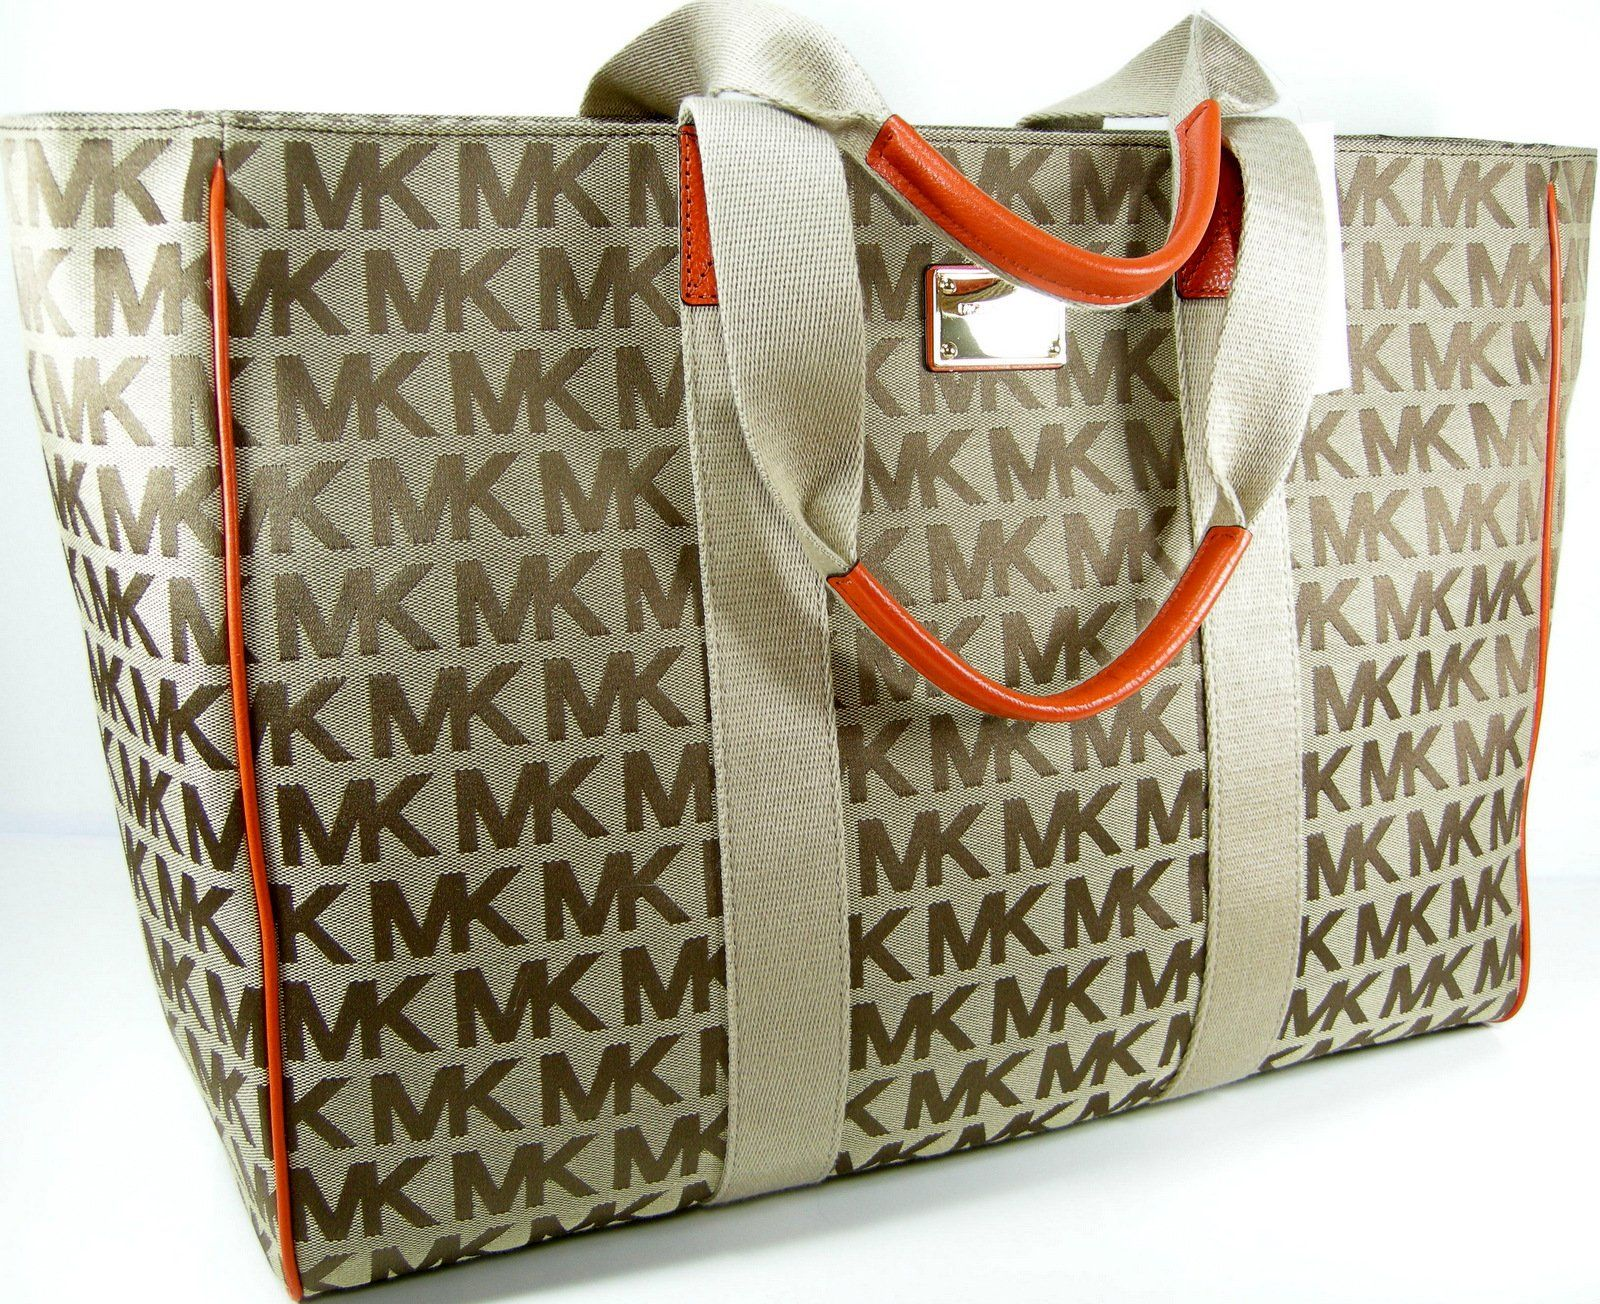 a08eaee46e359c Amazon.com: Michael Kors MK Logo Purse XL Tote Beige Tangerine Hand Bag  Luggage Laptop: Shoes